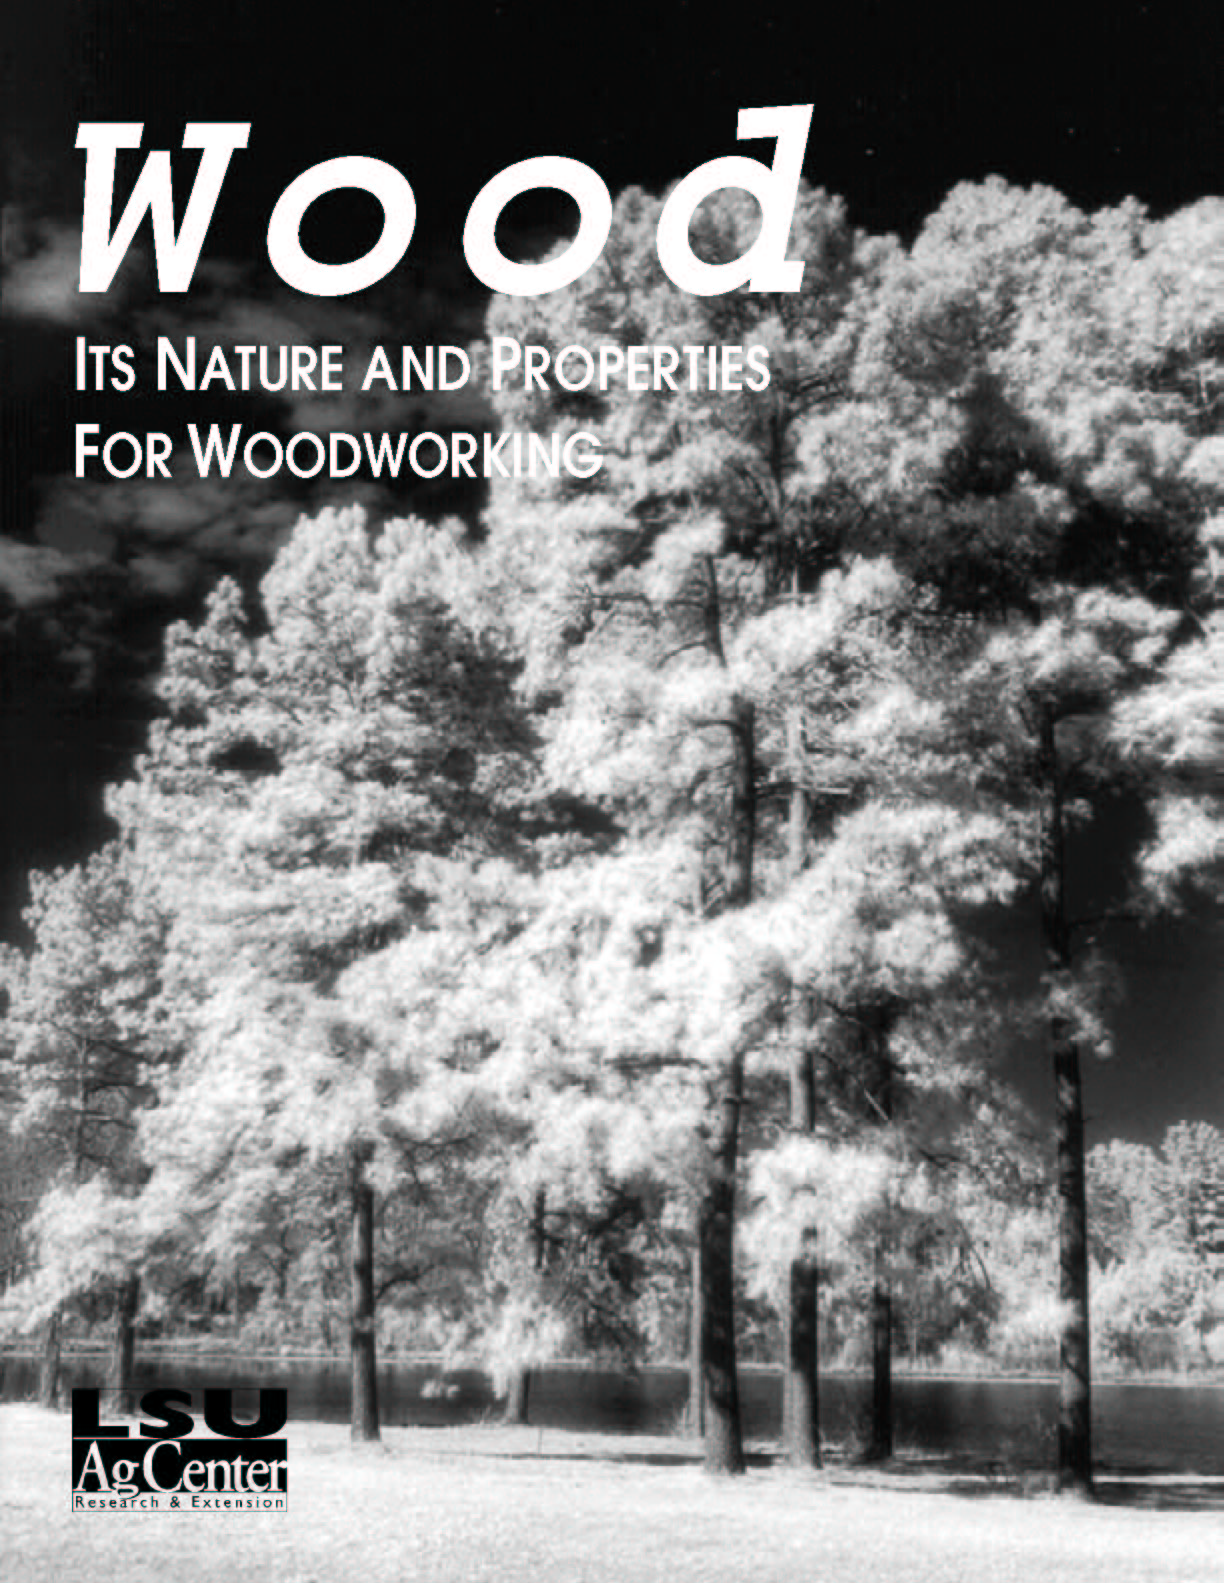 Wood: Its Nature and Properties for Woodworking